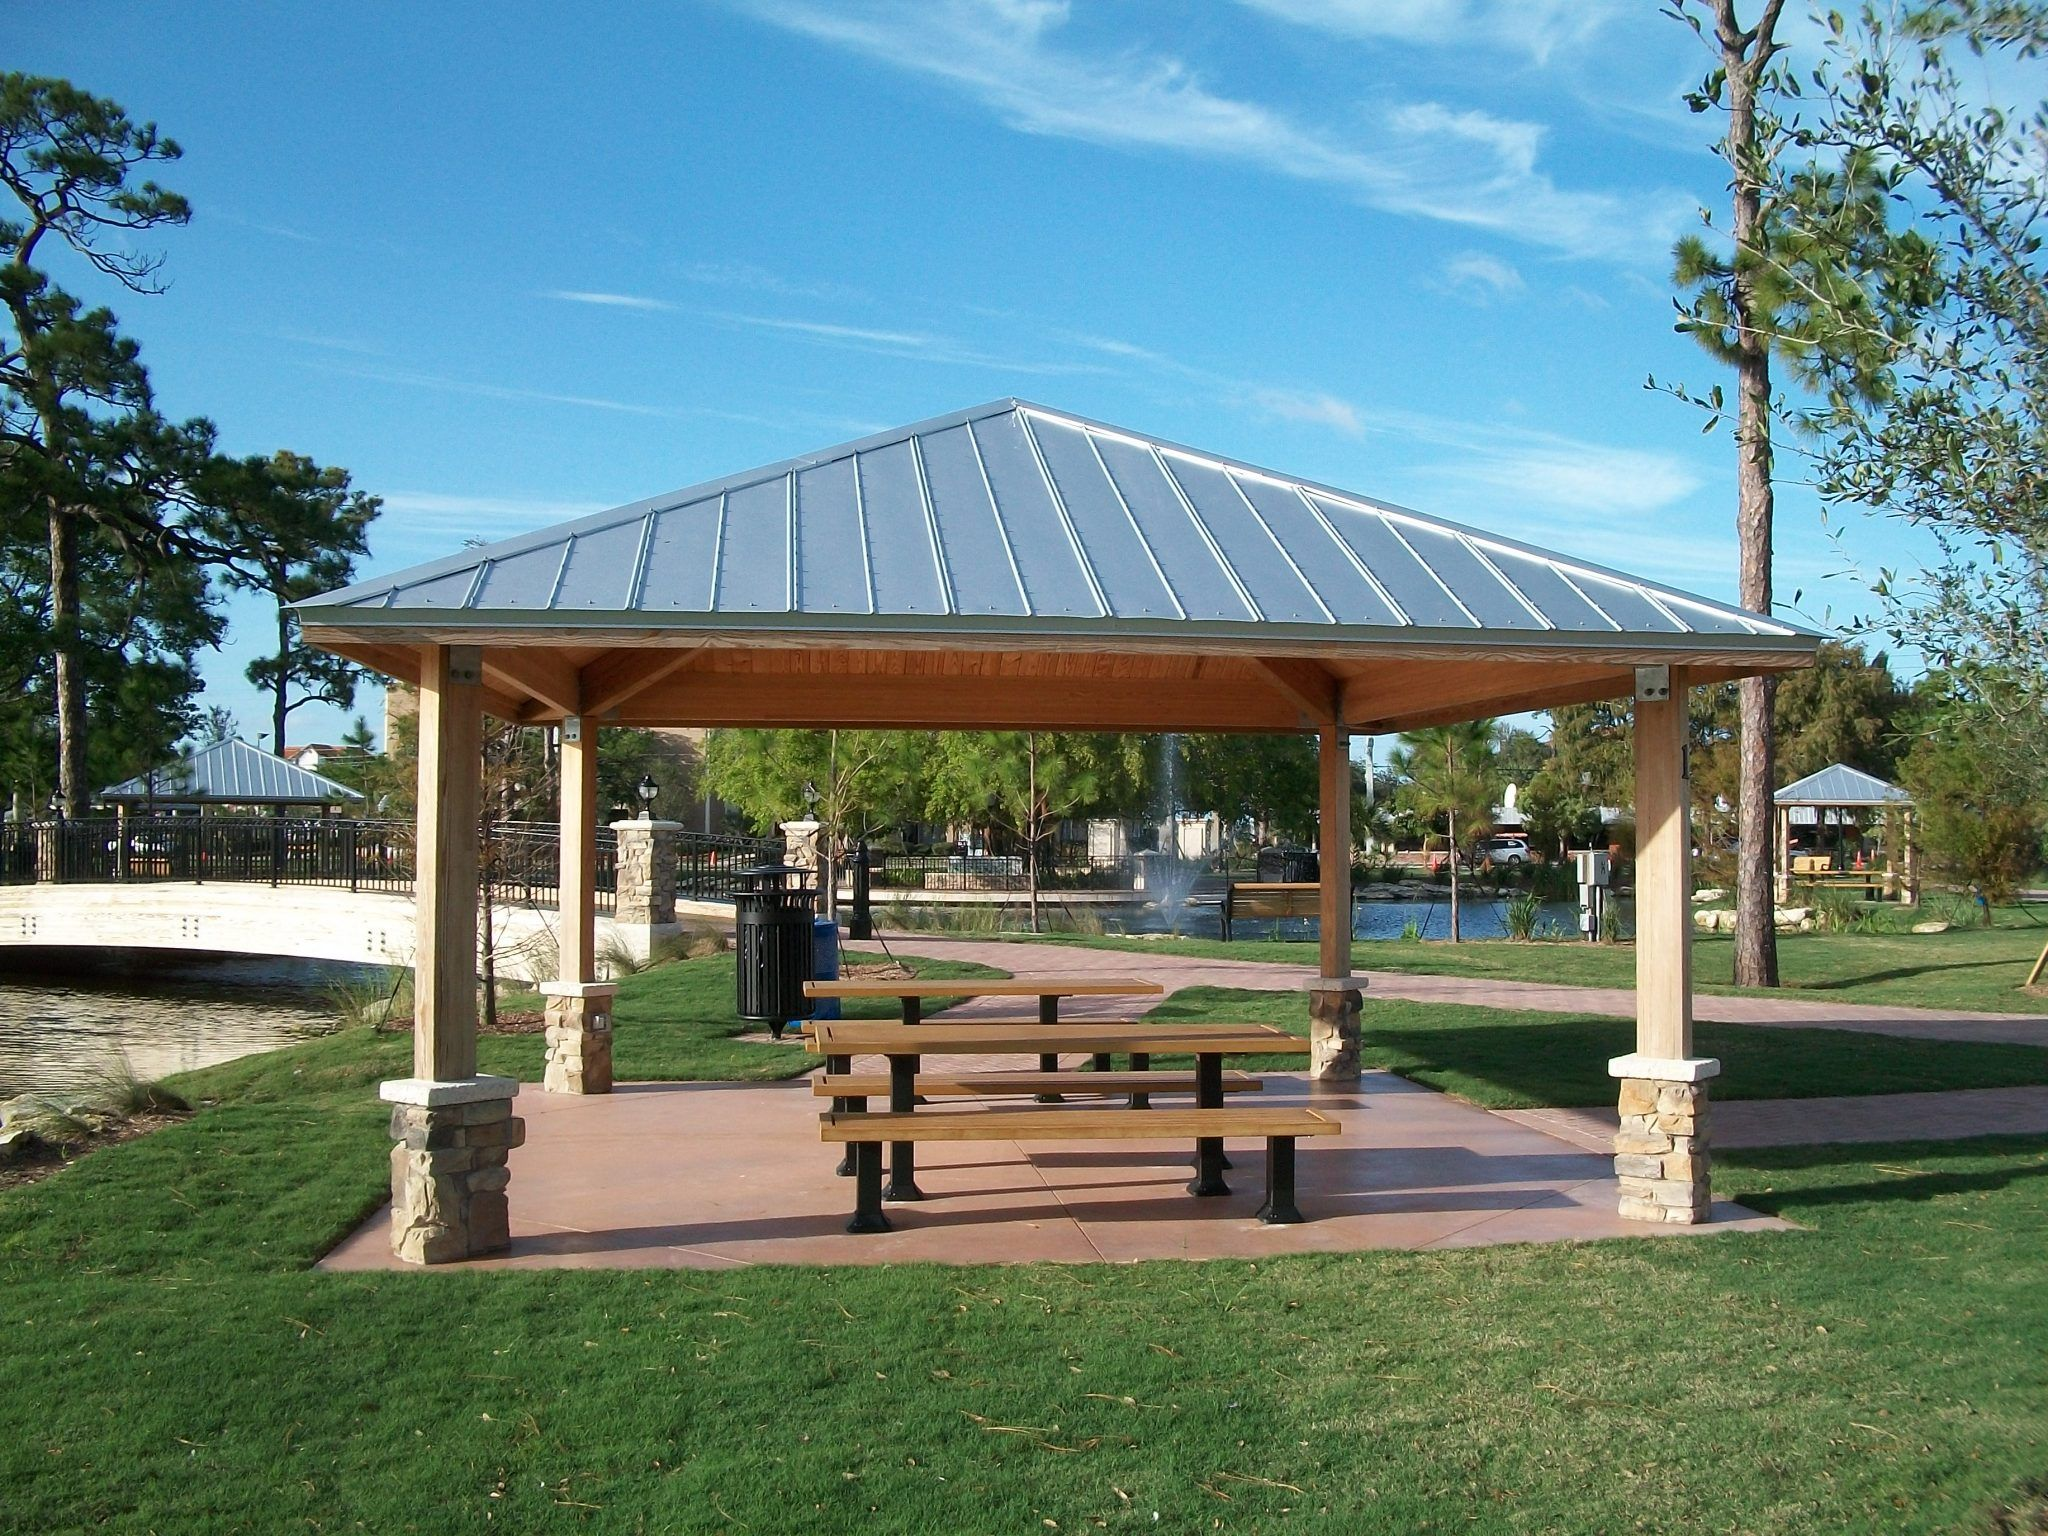 Park gazebo with picnic tables